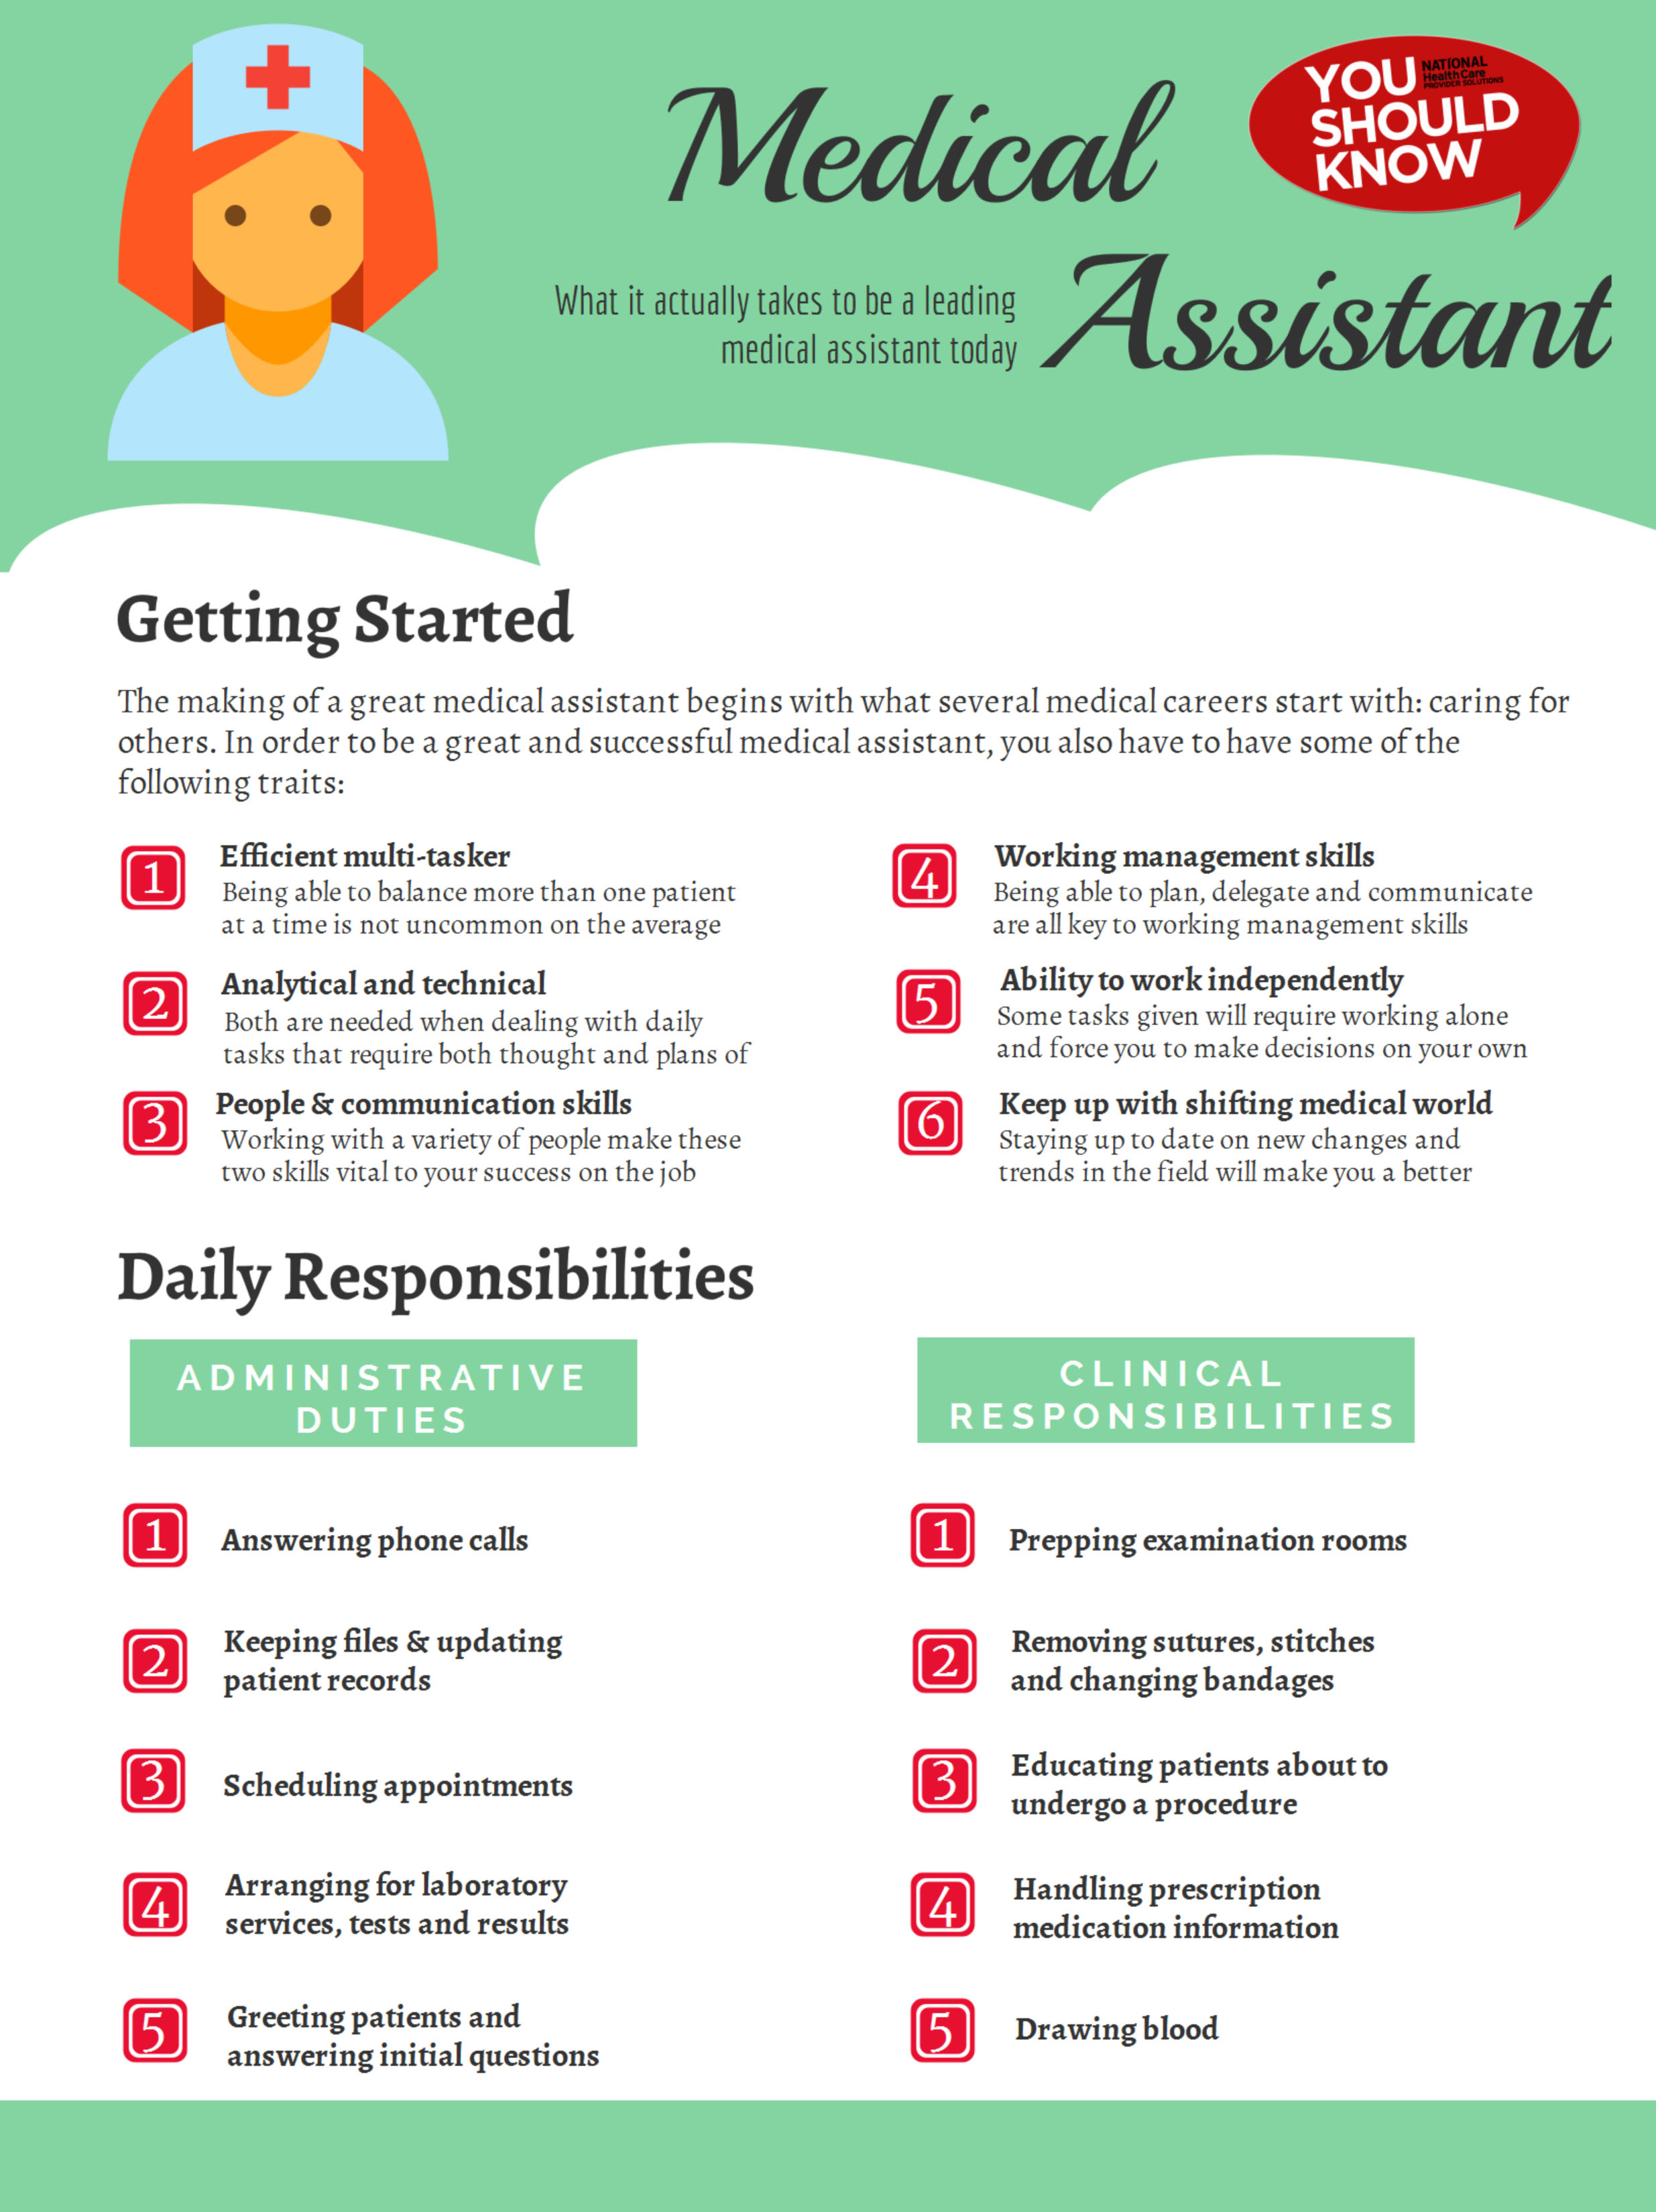 what does it take to be a leading medical assistant in 2015